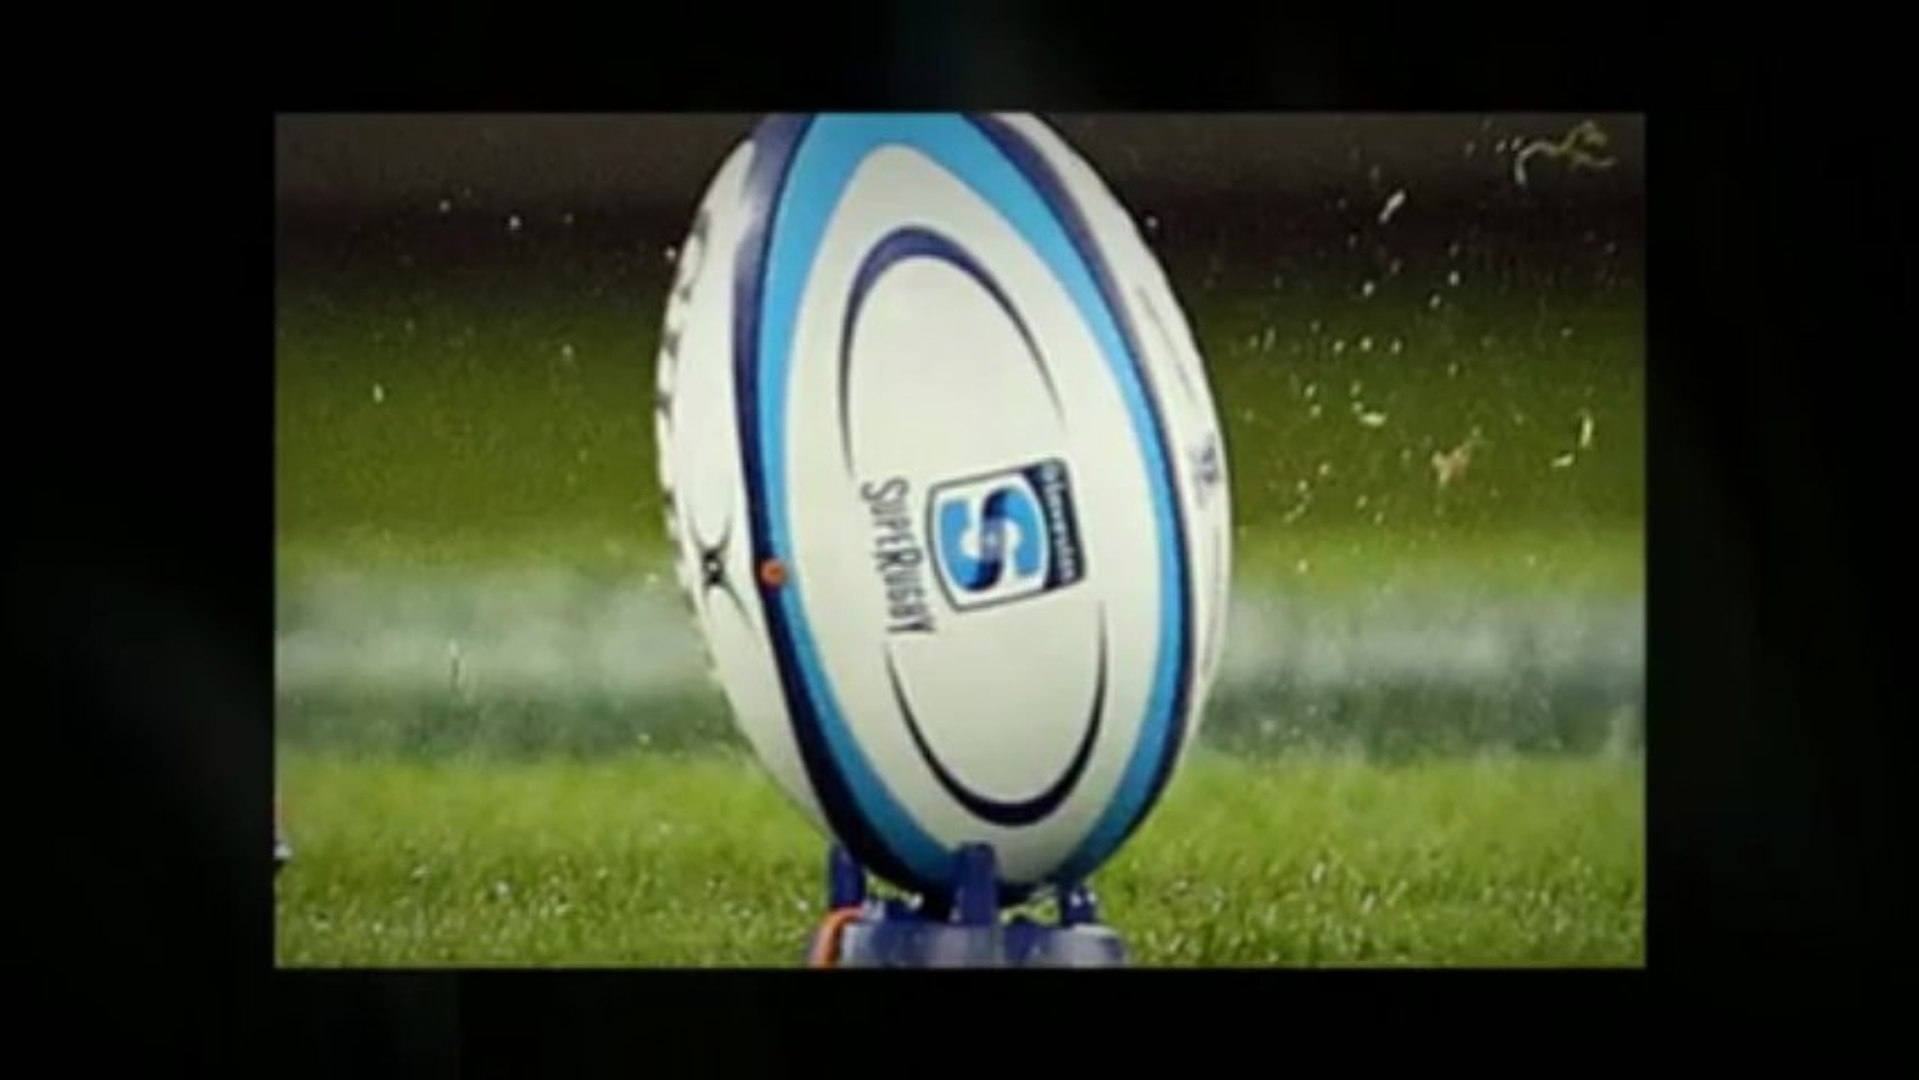 Watch Force vs. Cheetahs - at Perth - Super 15 Live Round 6 - super rugby 2013 round 1 highlights -